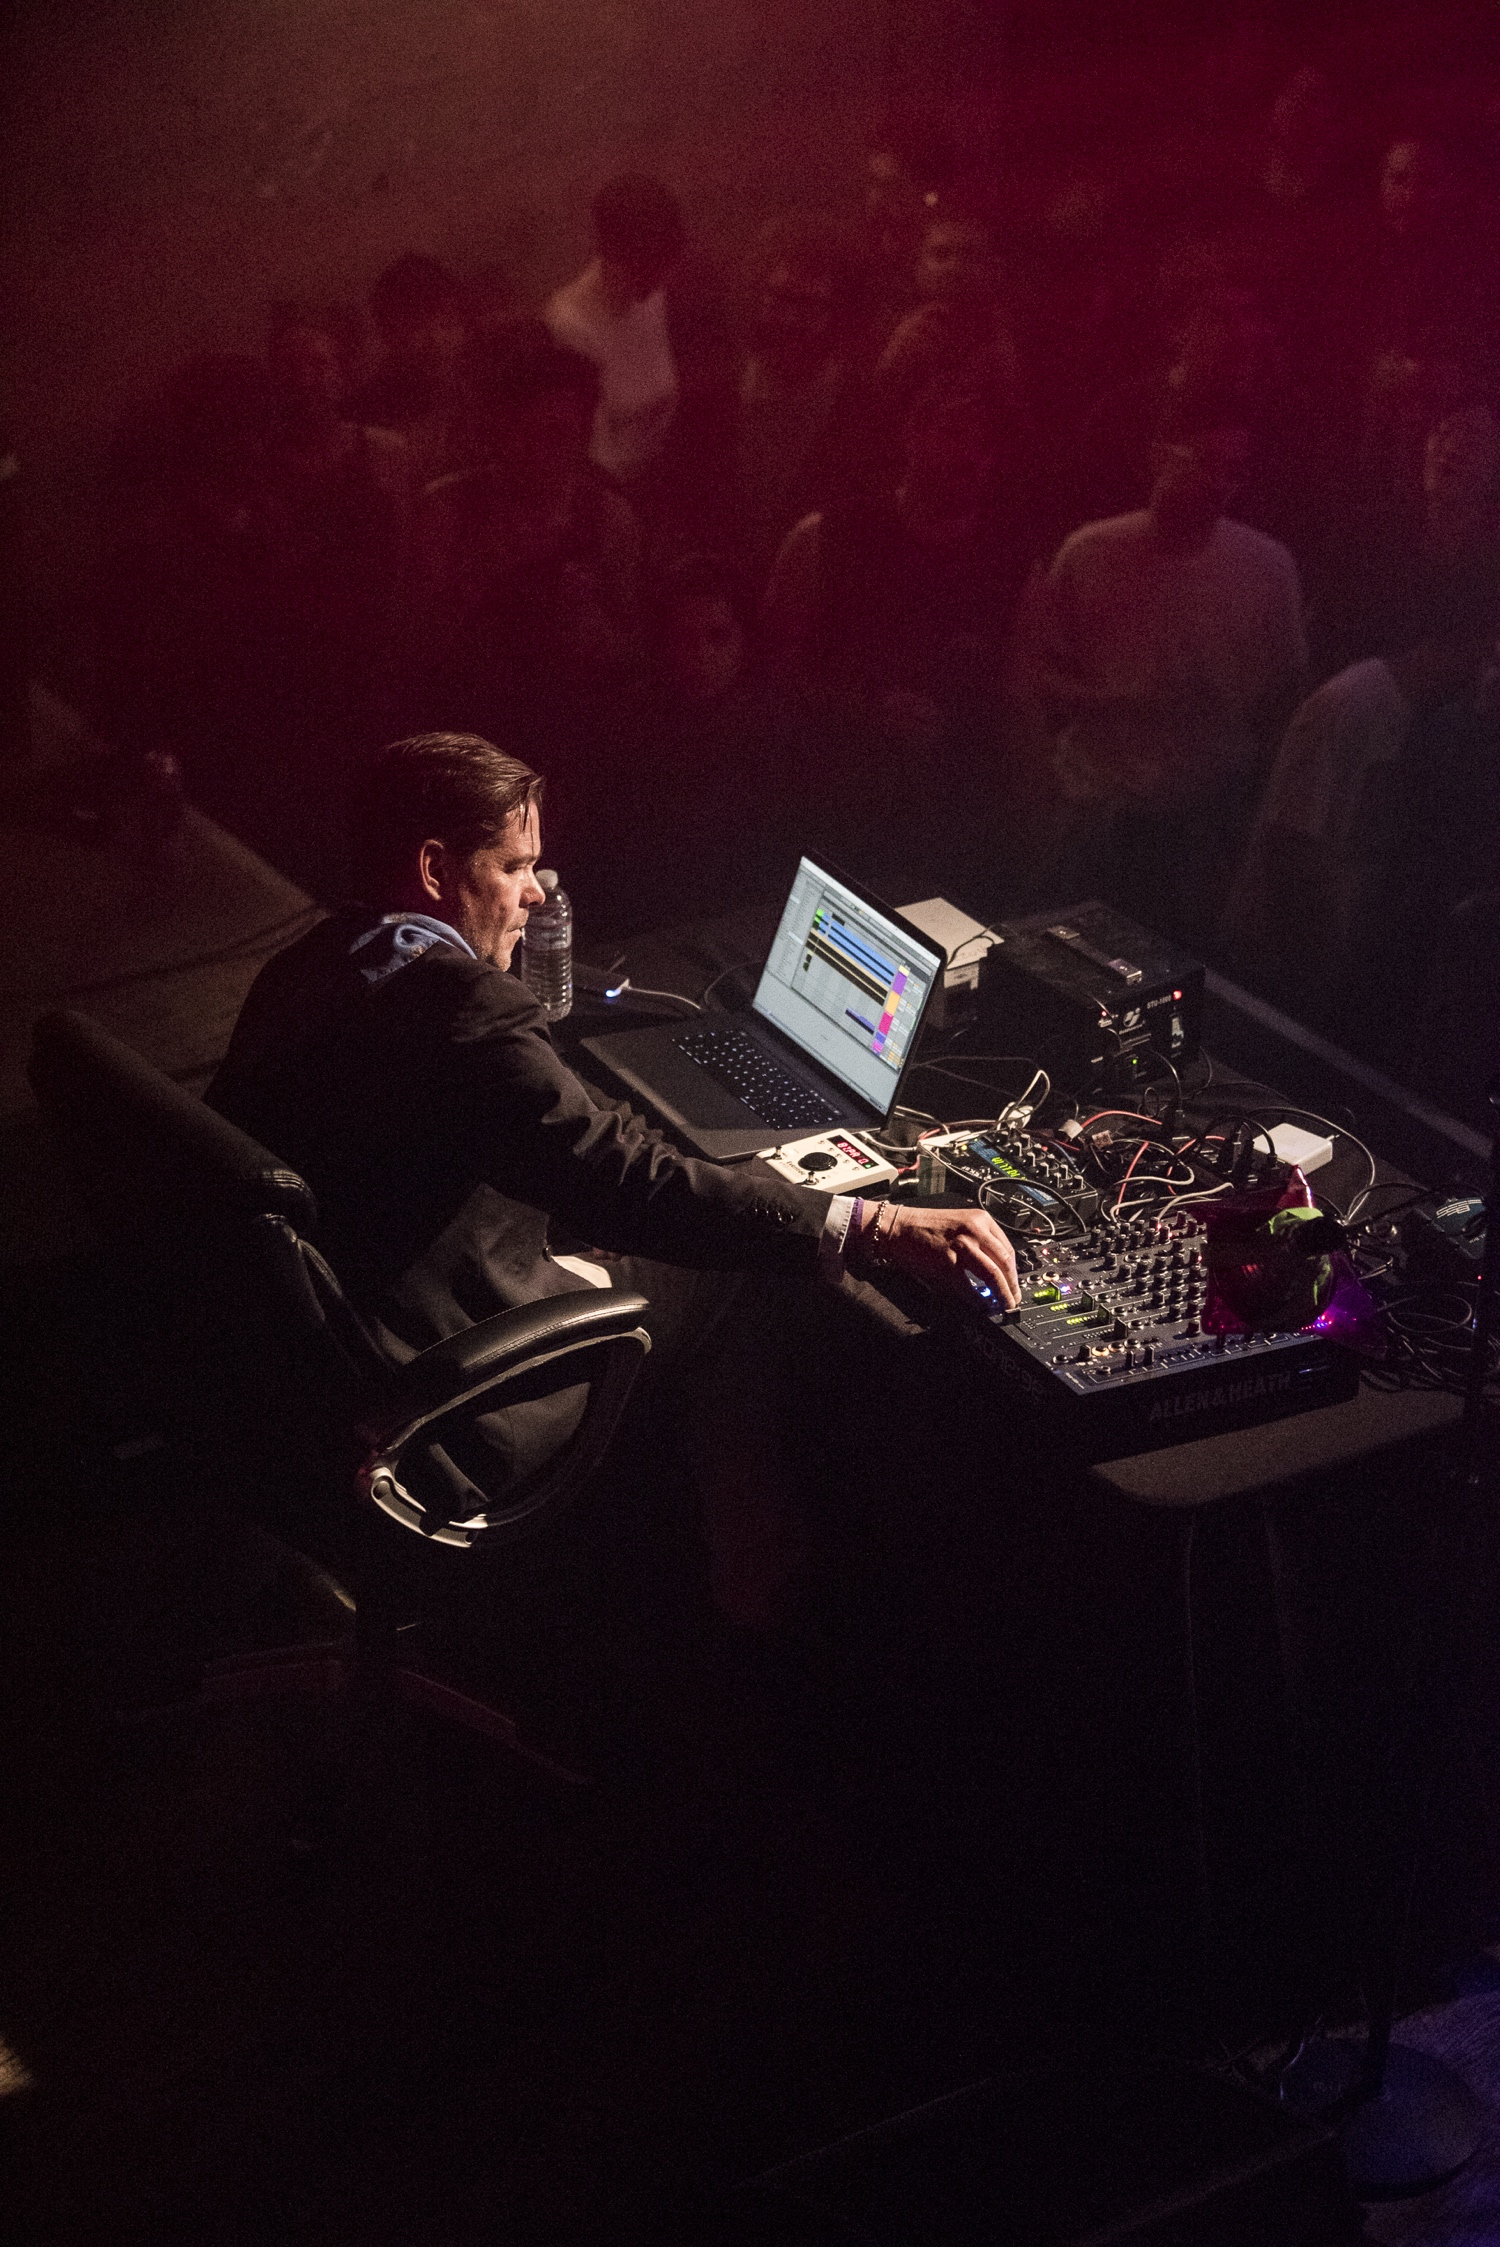 MUTEK.SF 2018: A celebration  techno and an indictment  technology